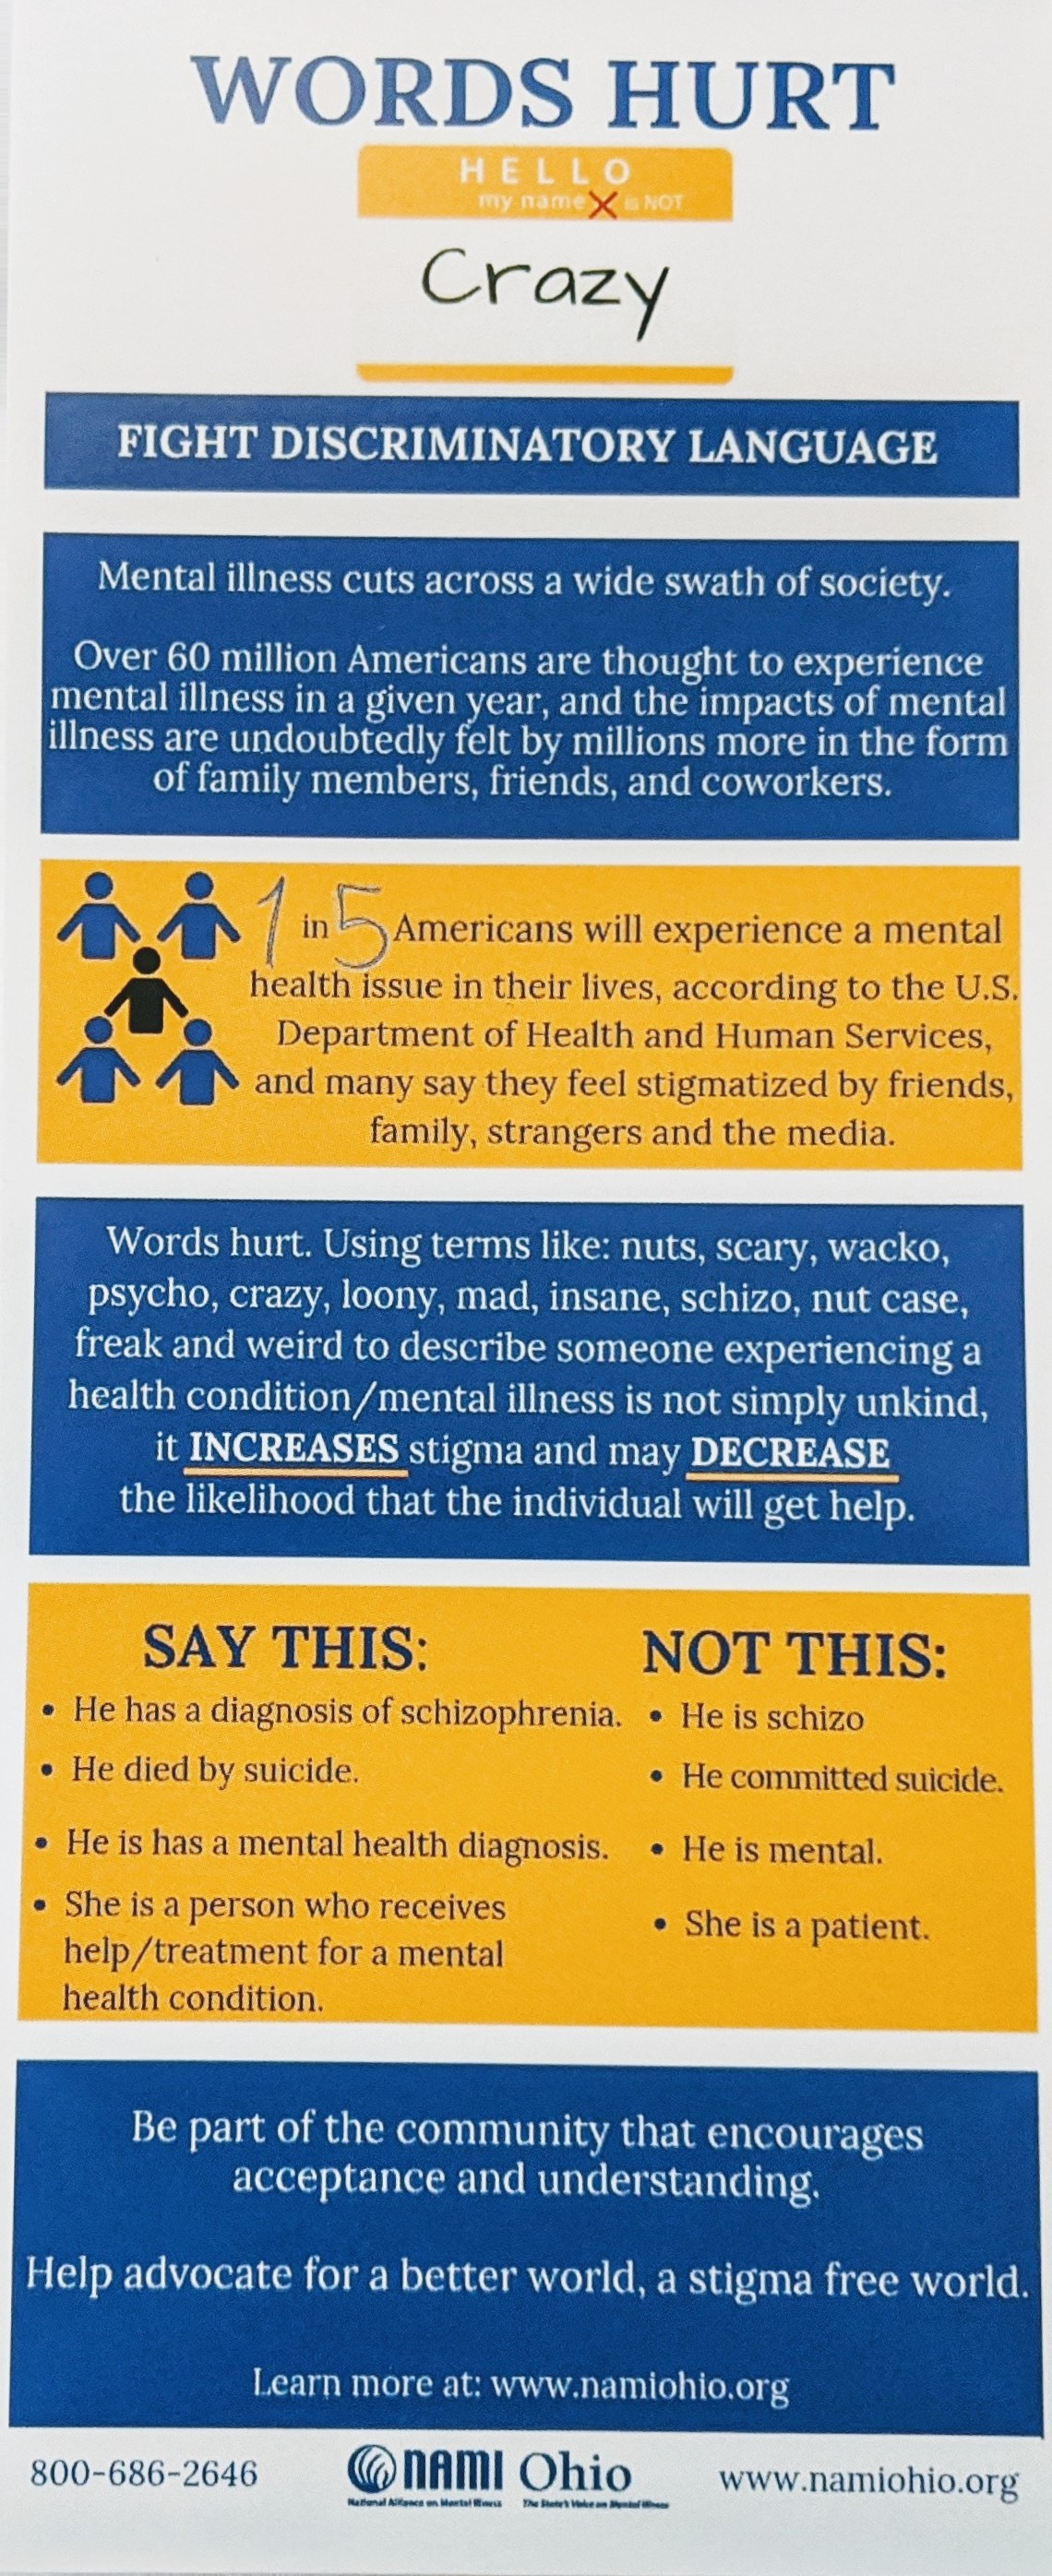 Words Hurt - Infographic on fighting discriminatory language